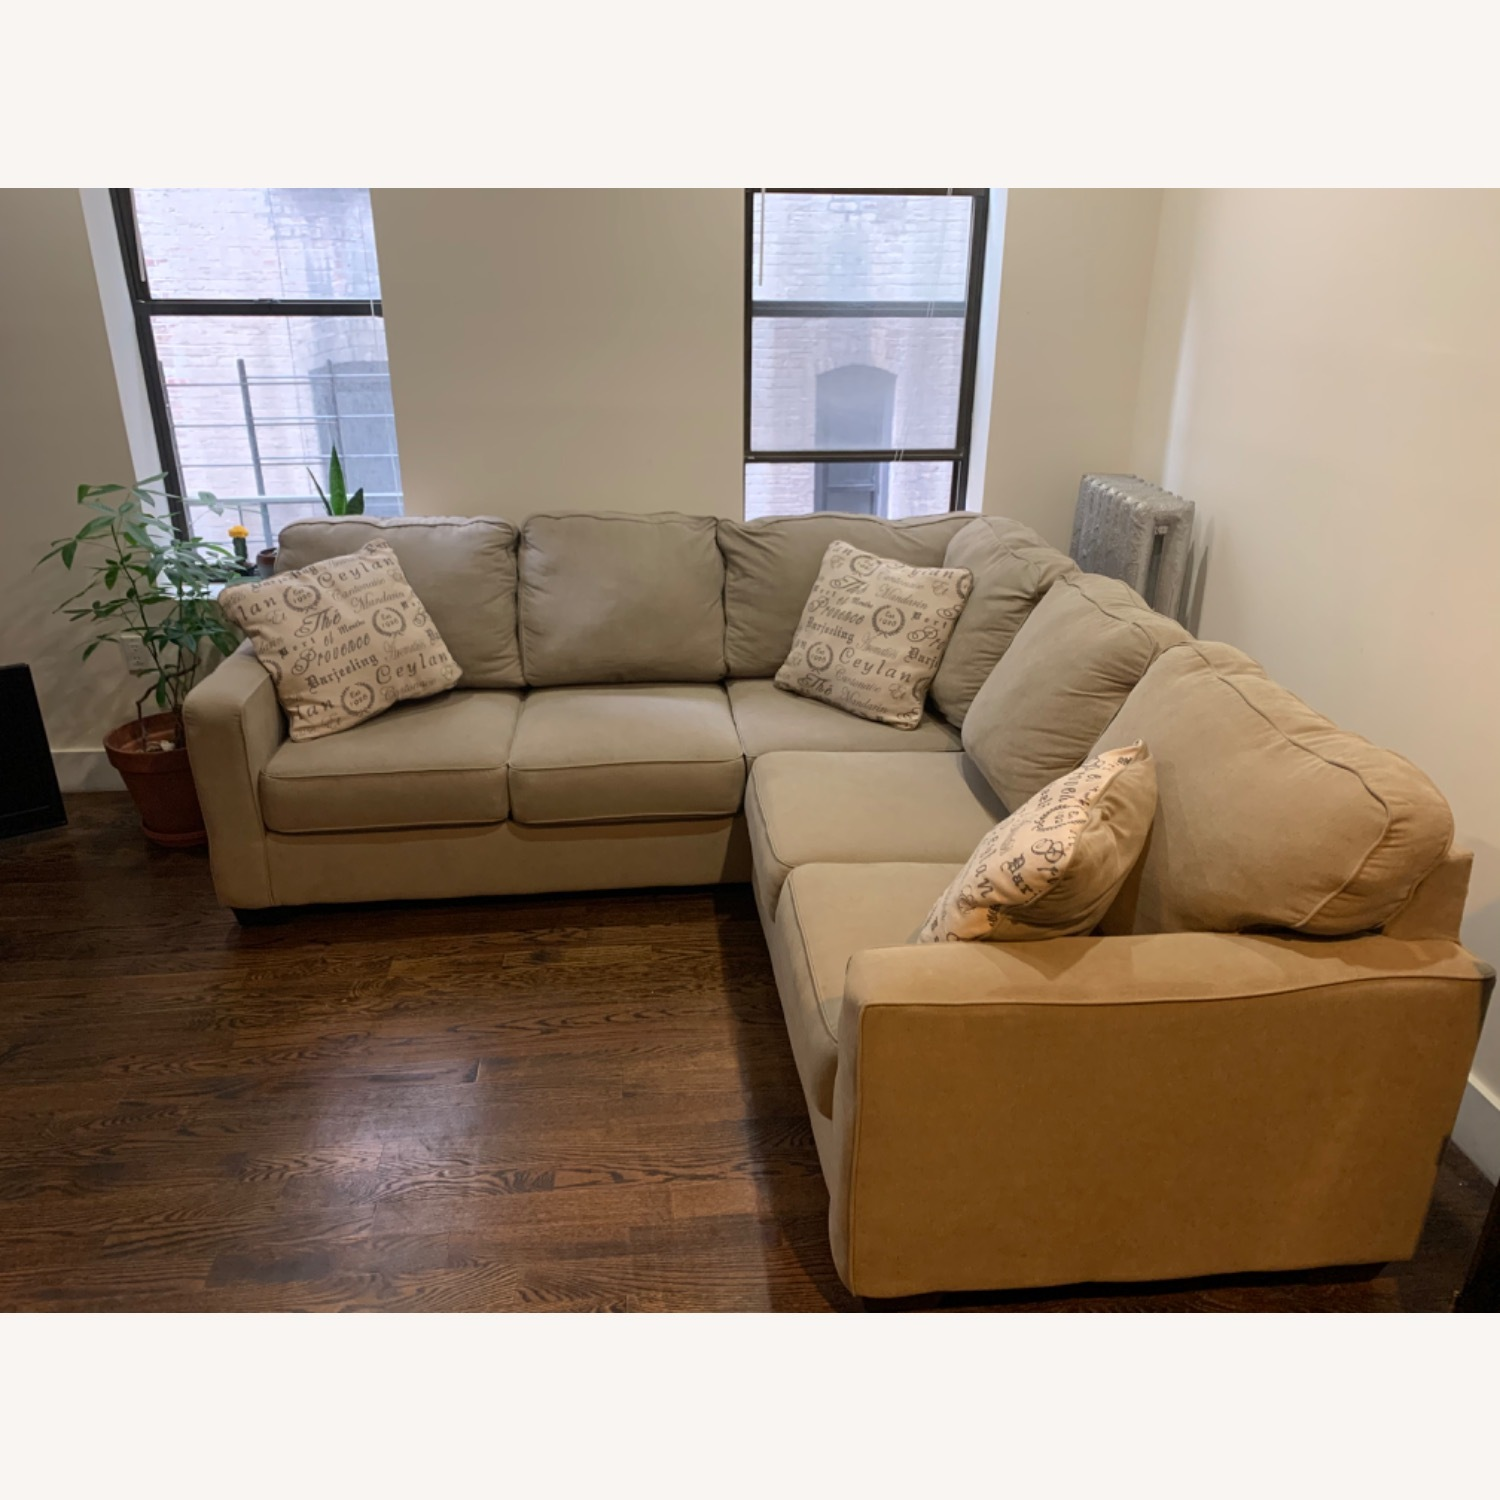 Ashley Furniture Big Comfy Couch - image-4